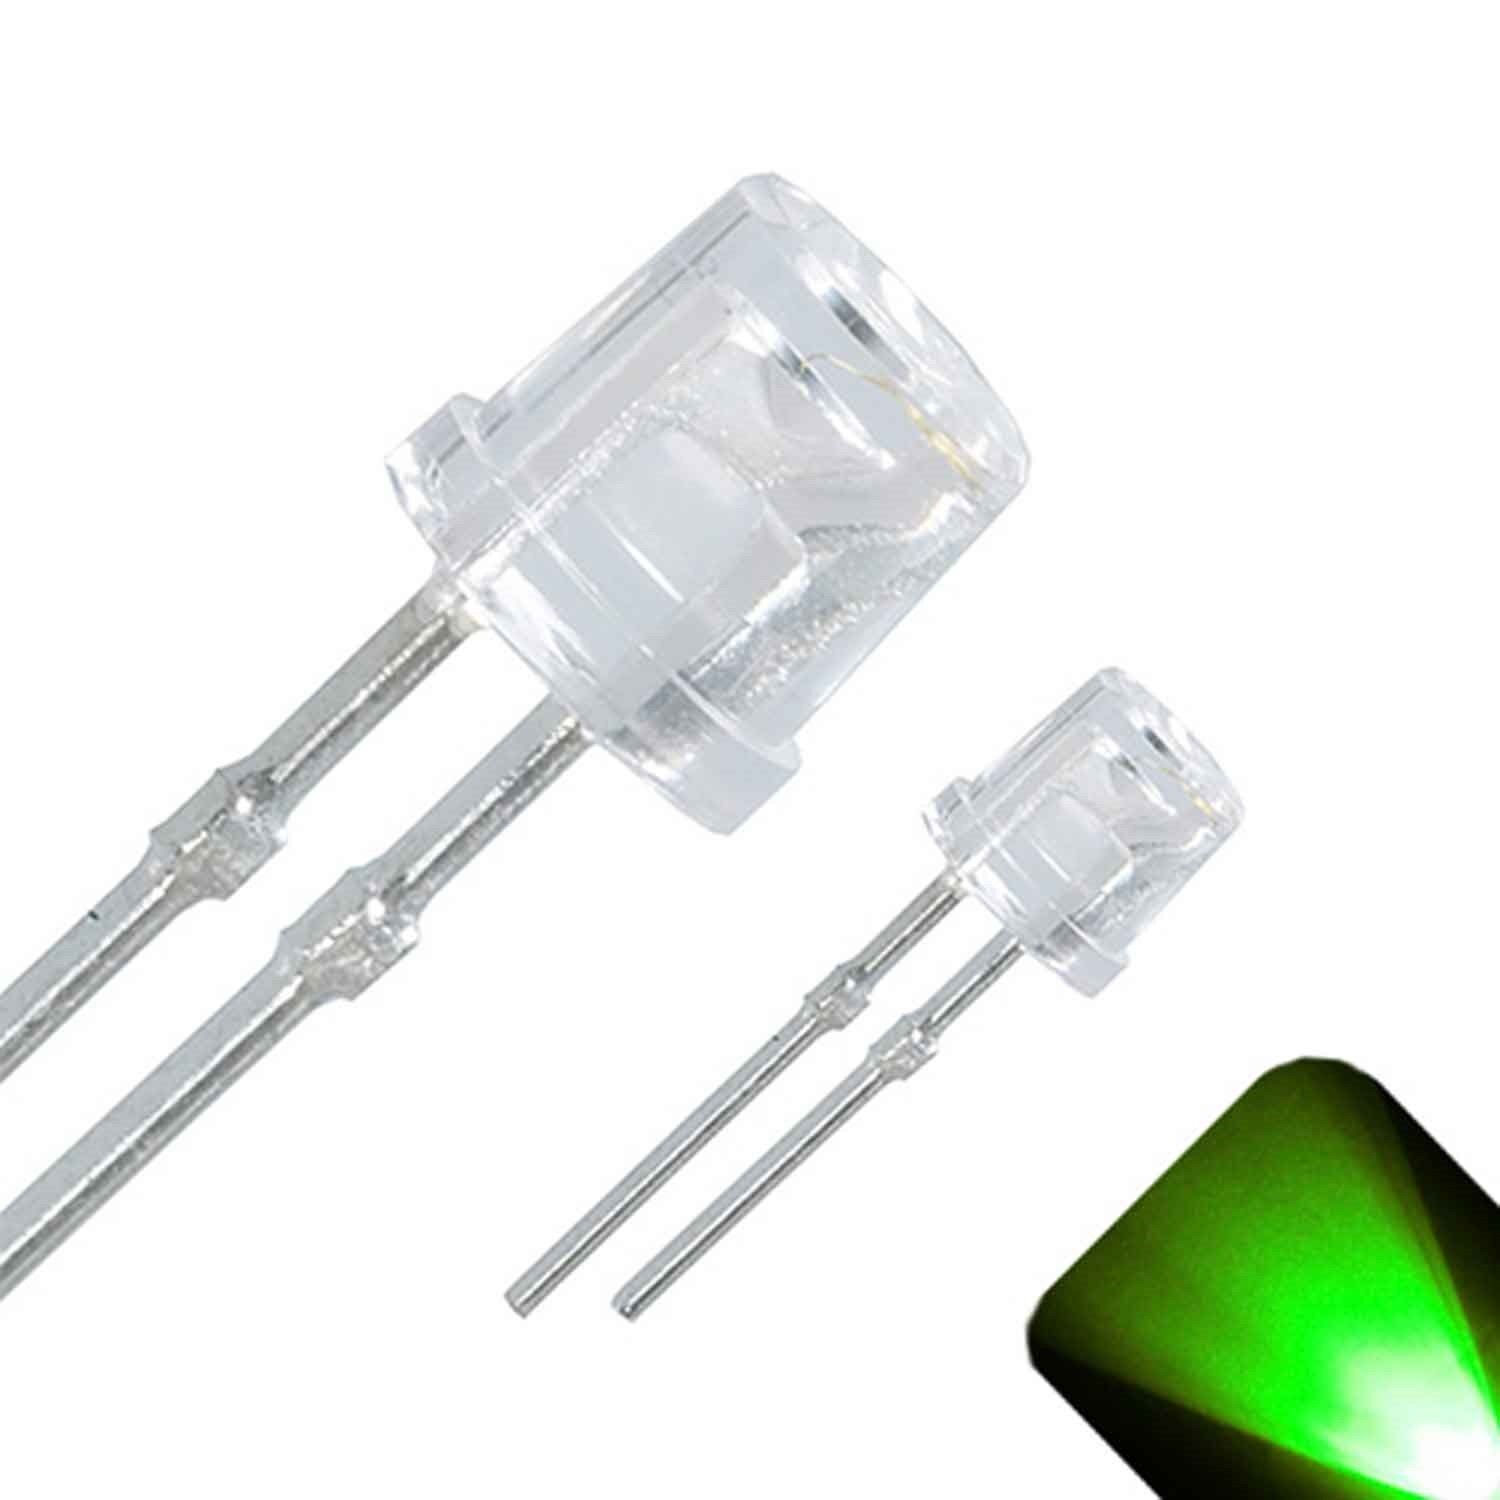 20 x LED 3mm Pure Green Ultra Bright Water Clear Round Top LEDs Light Lamp Car